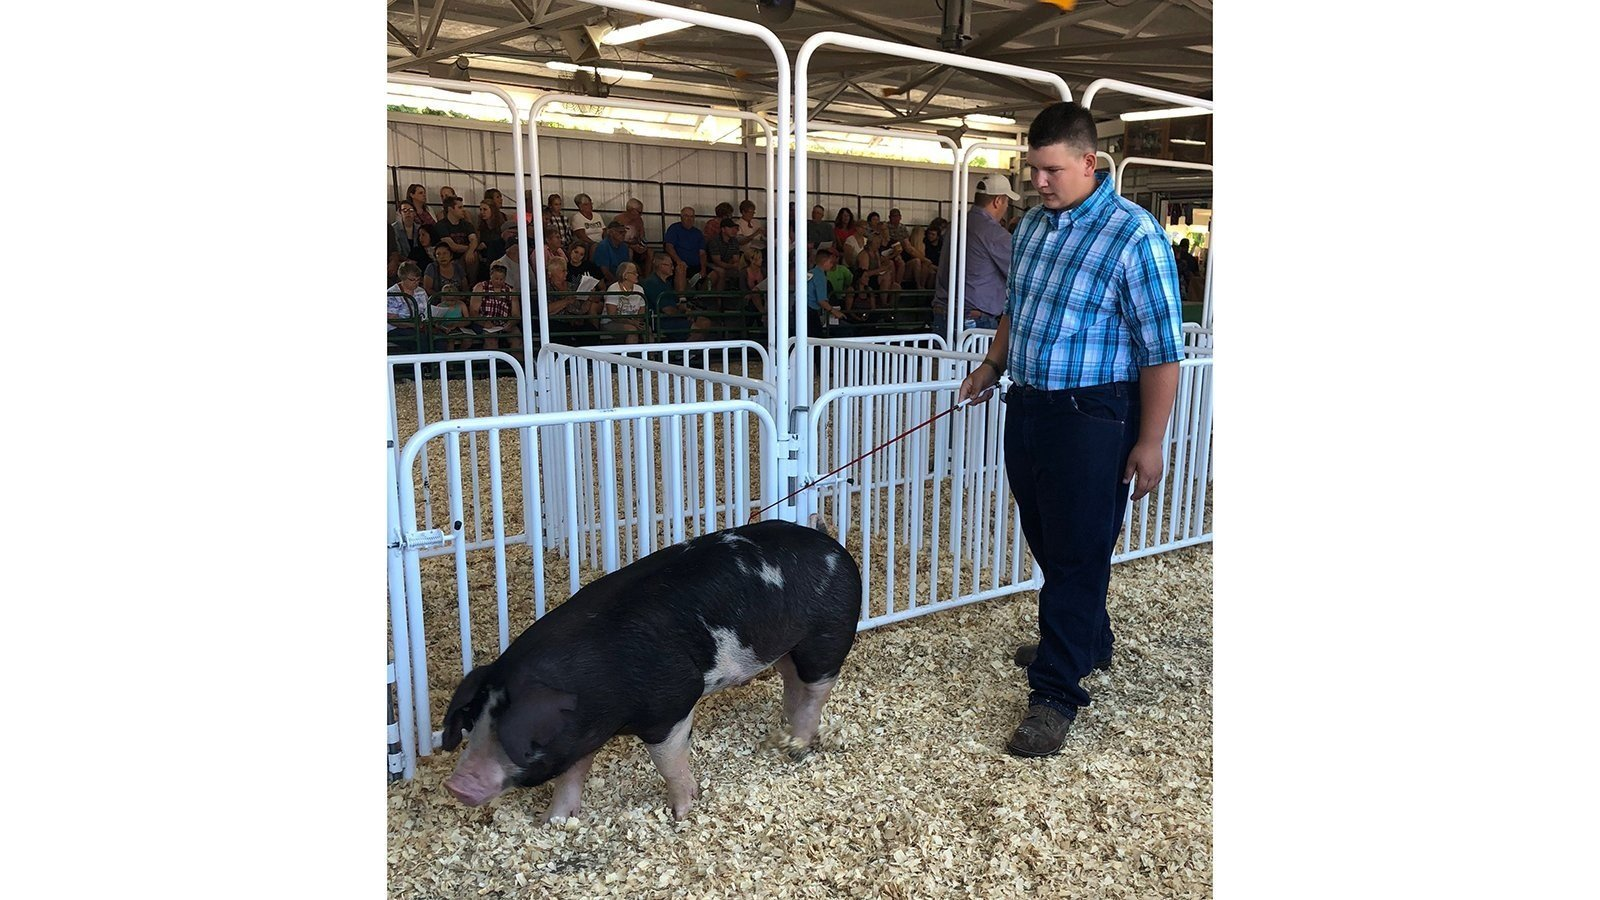 Waylon Klitzman, 15, auctioned his pig Roo to raise money for cancer research.